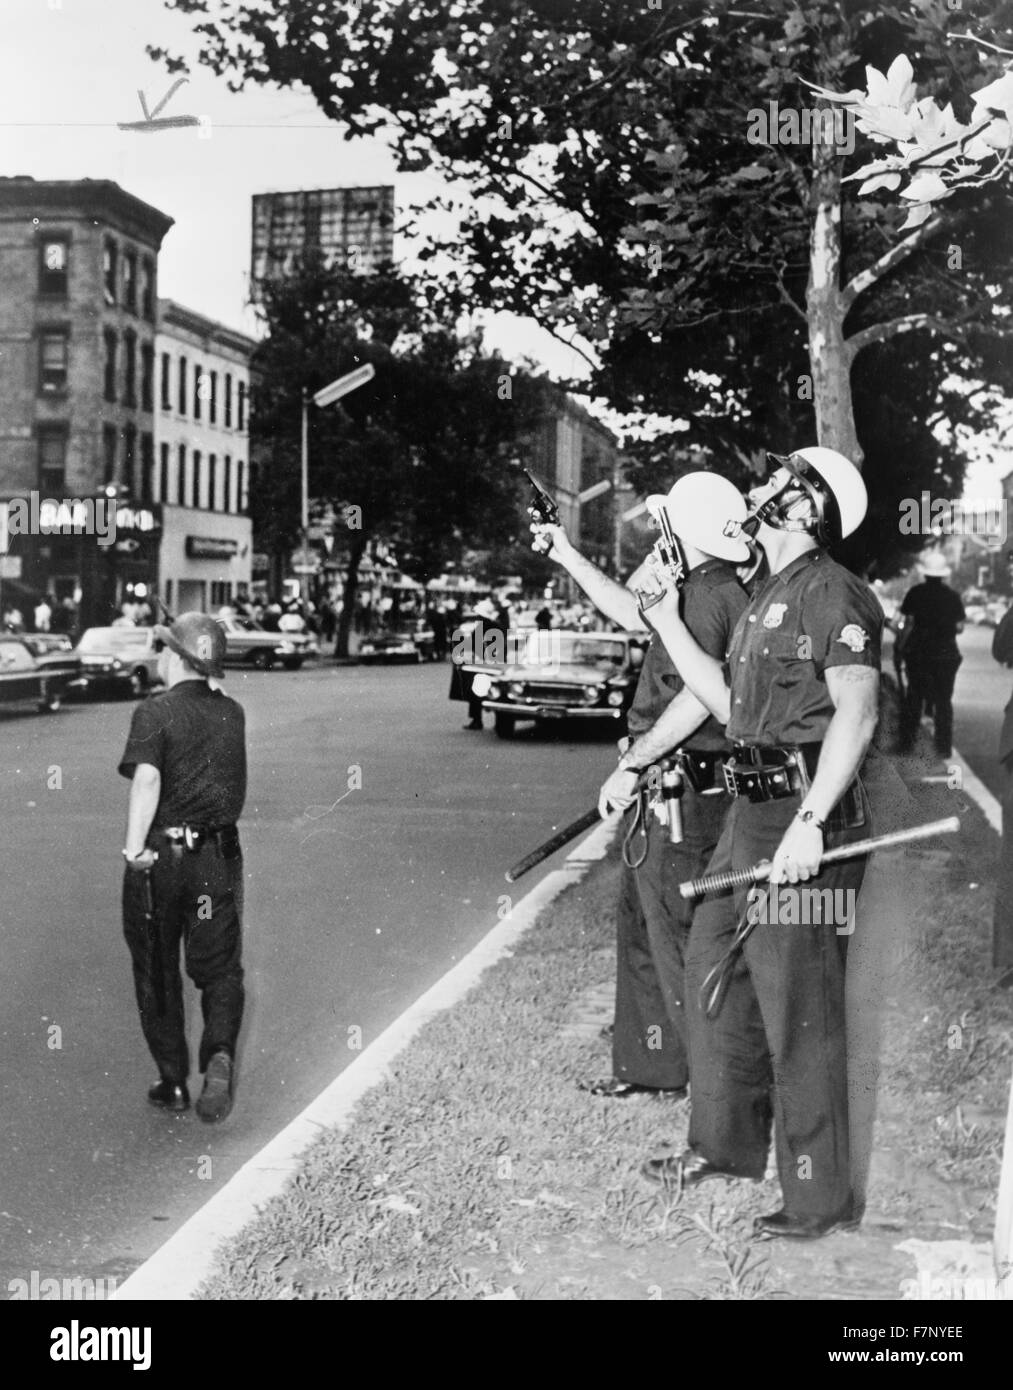 Police in Harlem, New York, USA, during the July 1964 race riots - Stock Image